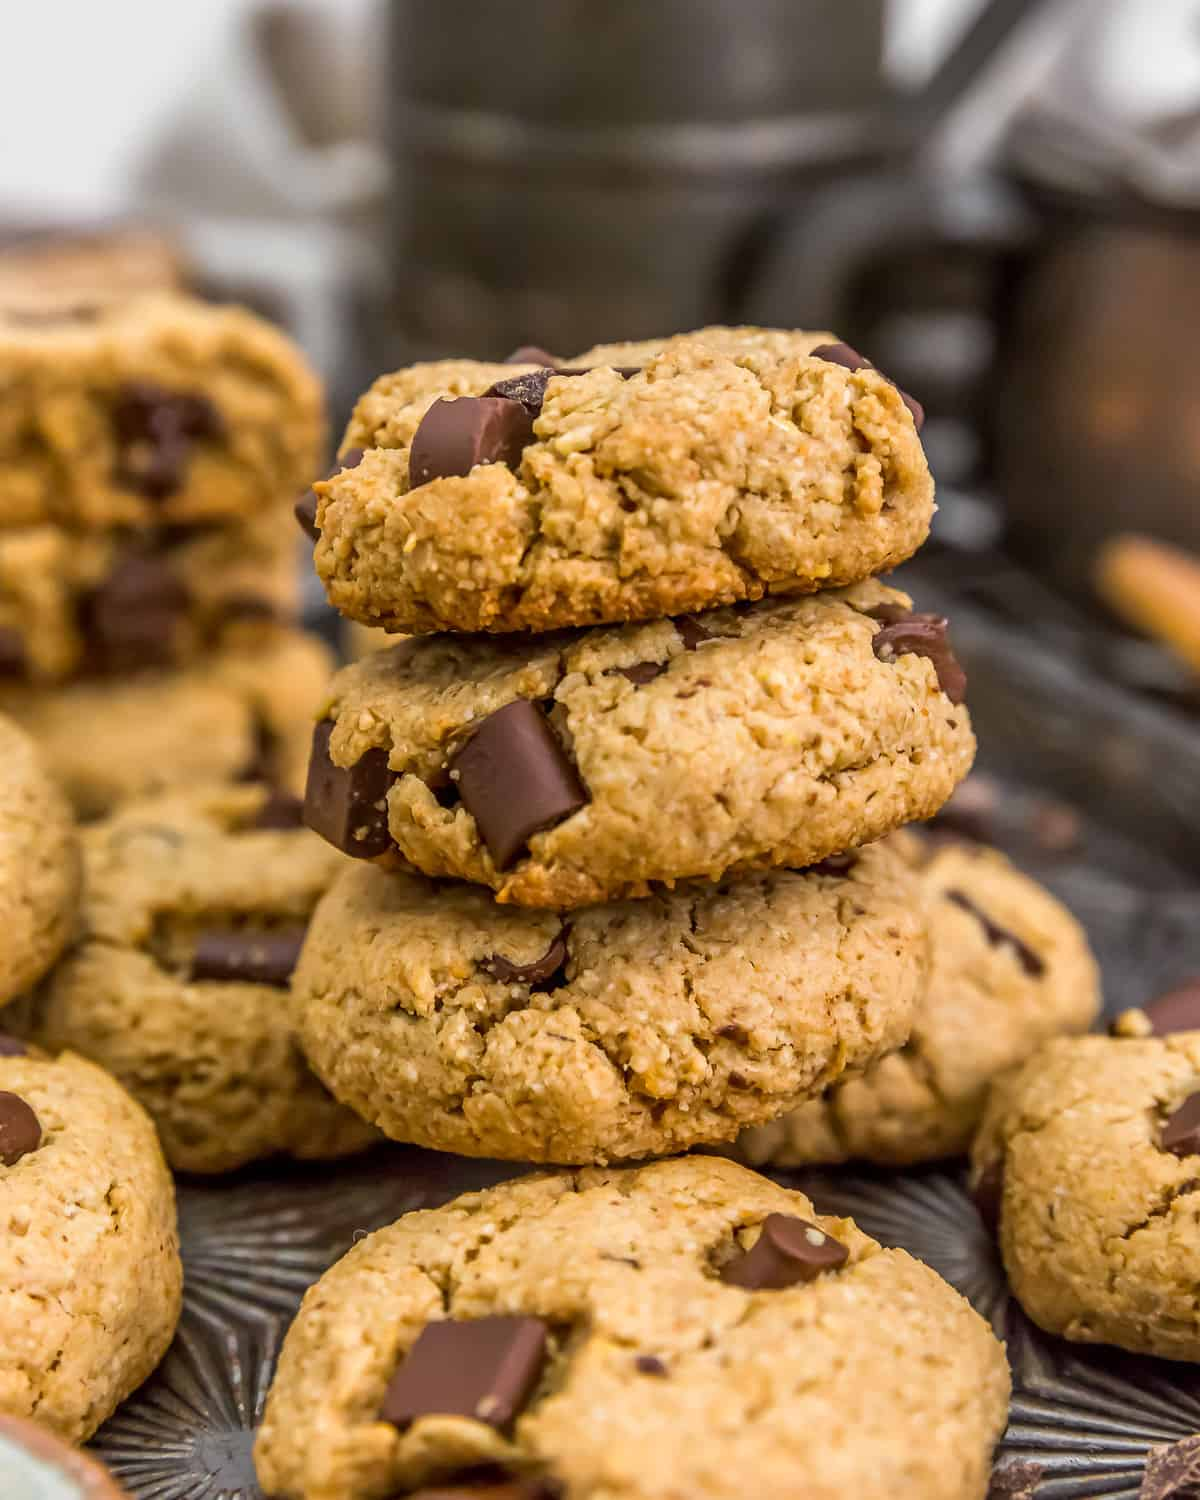 Stacked Vegan Peanut Butter Chocolate Chip Cookies